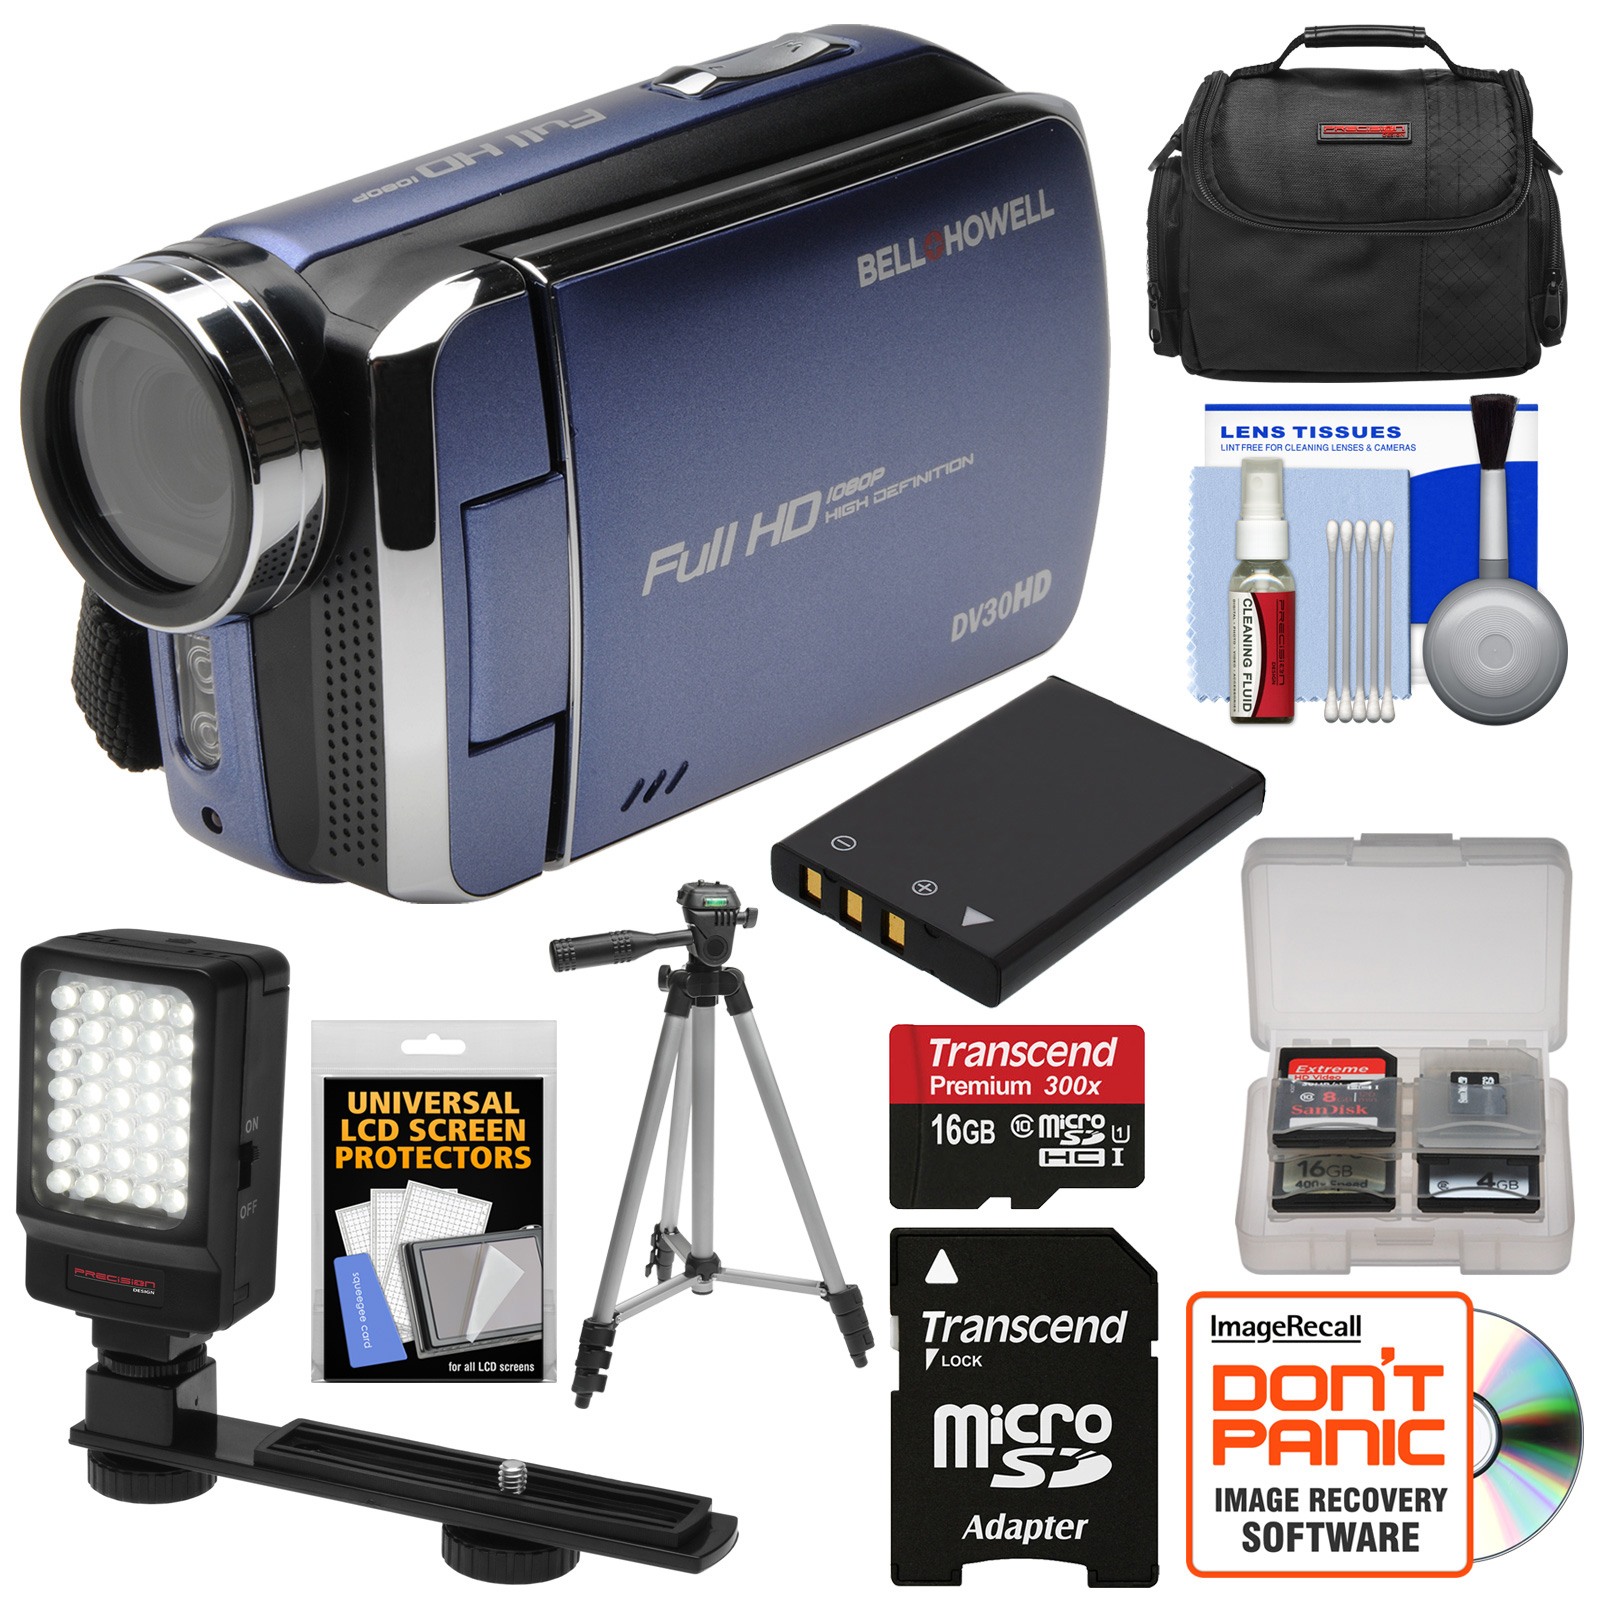 Bell & Howell DV30HD 1080p HD Video Camera Camcorder (Blue) with 16GB Card + Battery + Case + Tripod + LED Video Light + Kit